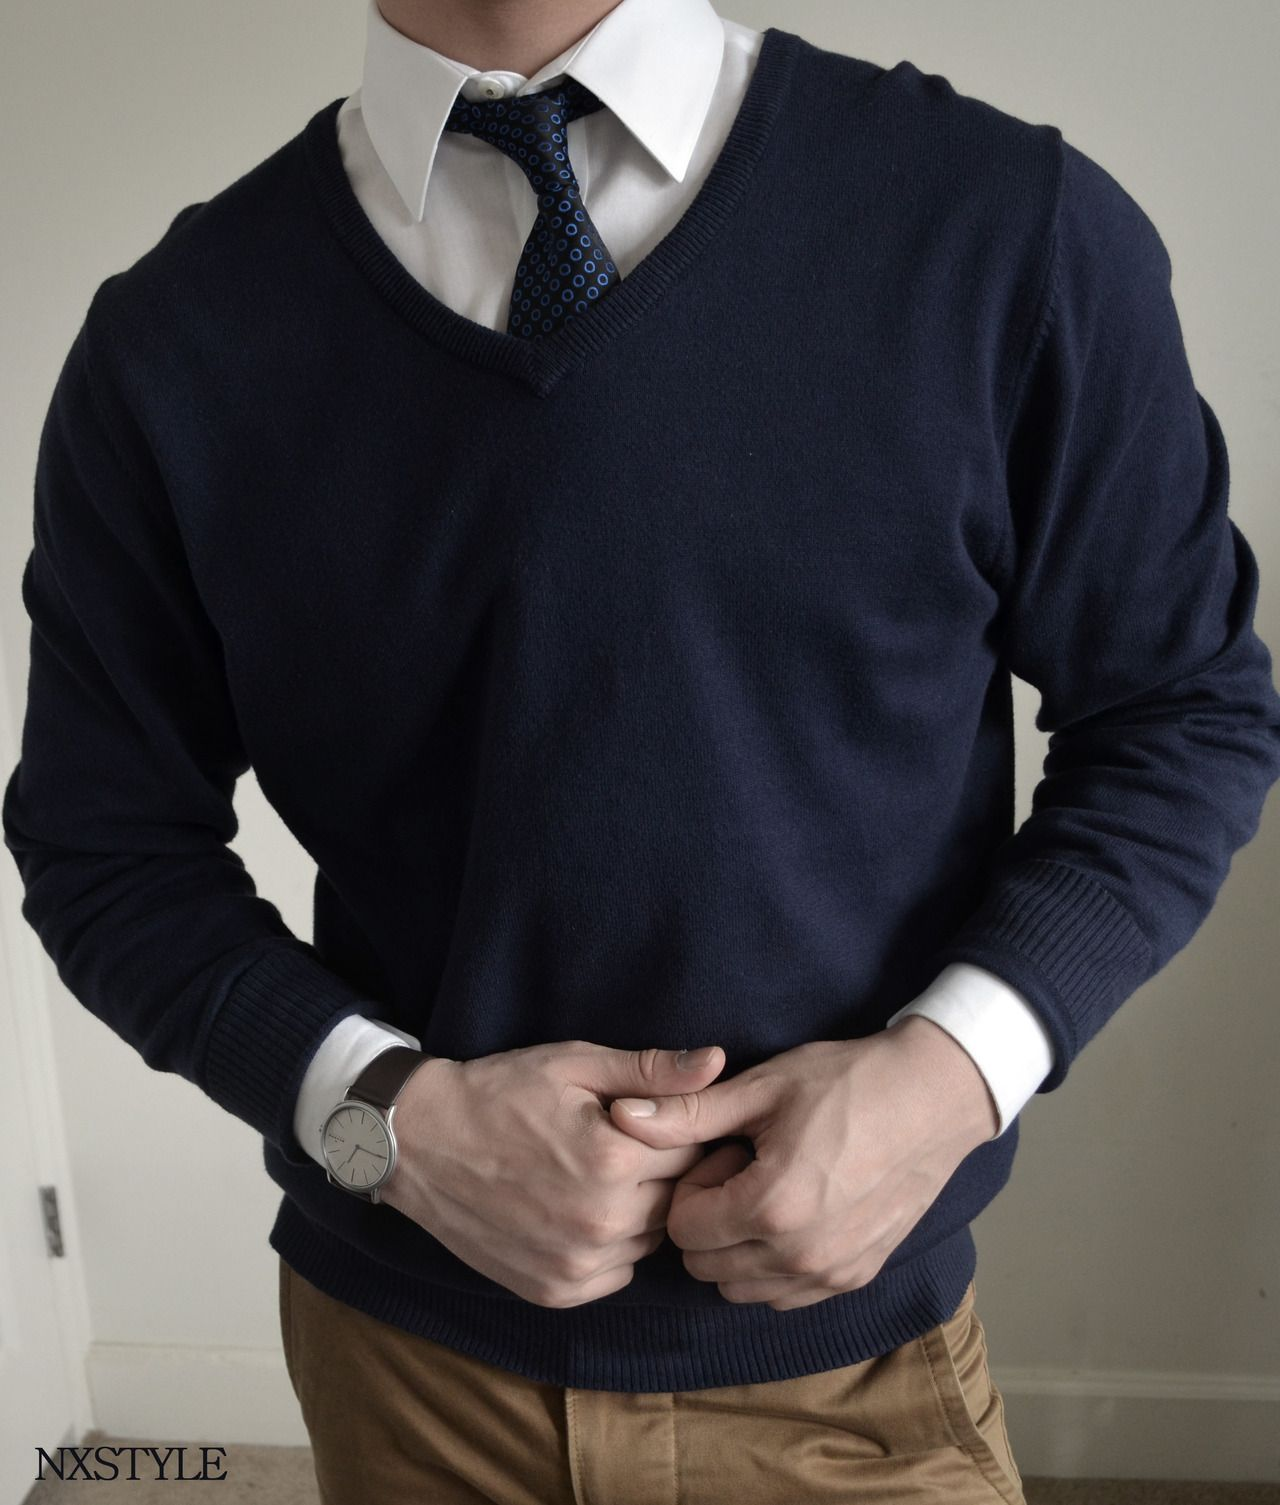 V-neck sweaters look great with or without patterns. A plain v neck in black, brown, gray, or navy blue look extremely sharp and can be worn with nearly anything. Wearing a v neck sweater with a dress shirt underneath is the easiest way to wear a v neck formally .